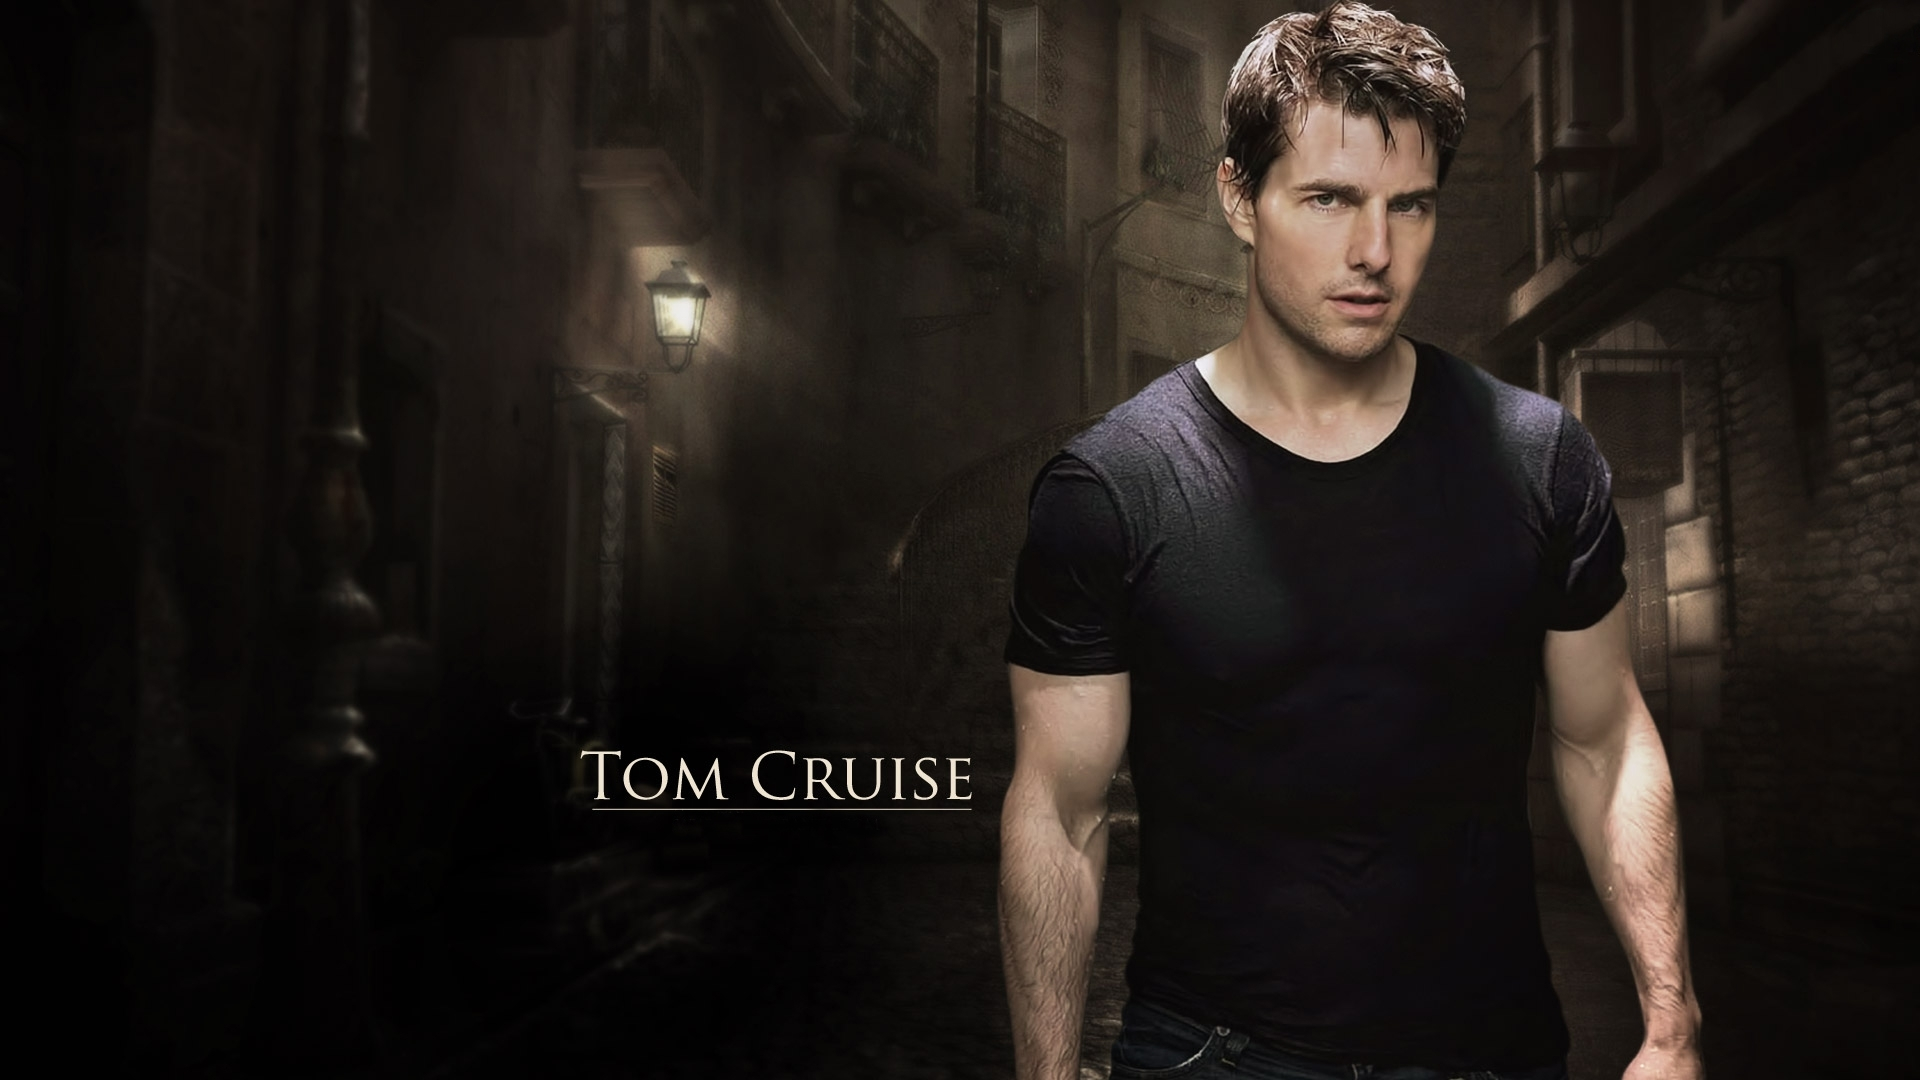 tom cruise hd images : get free top quality tom cruise hd images for